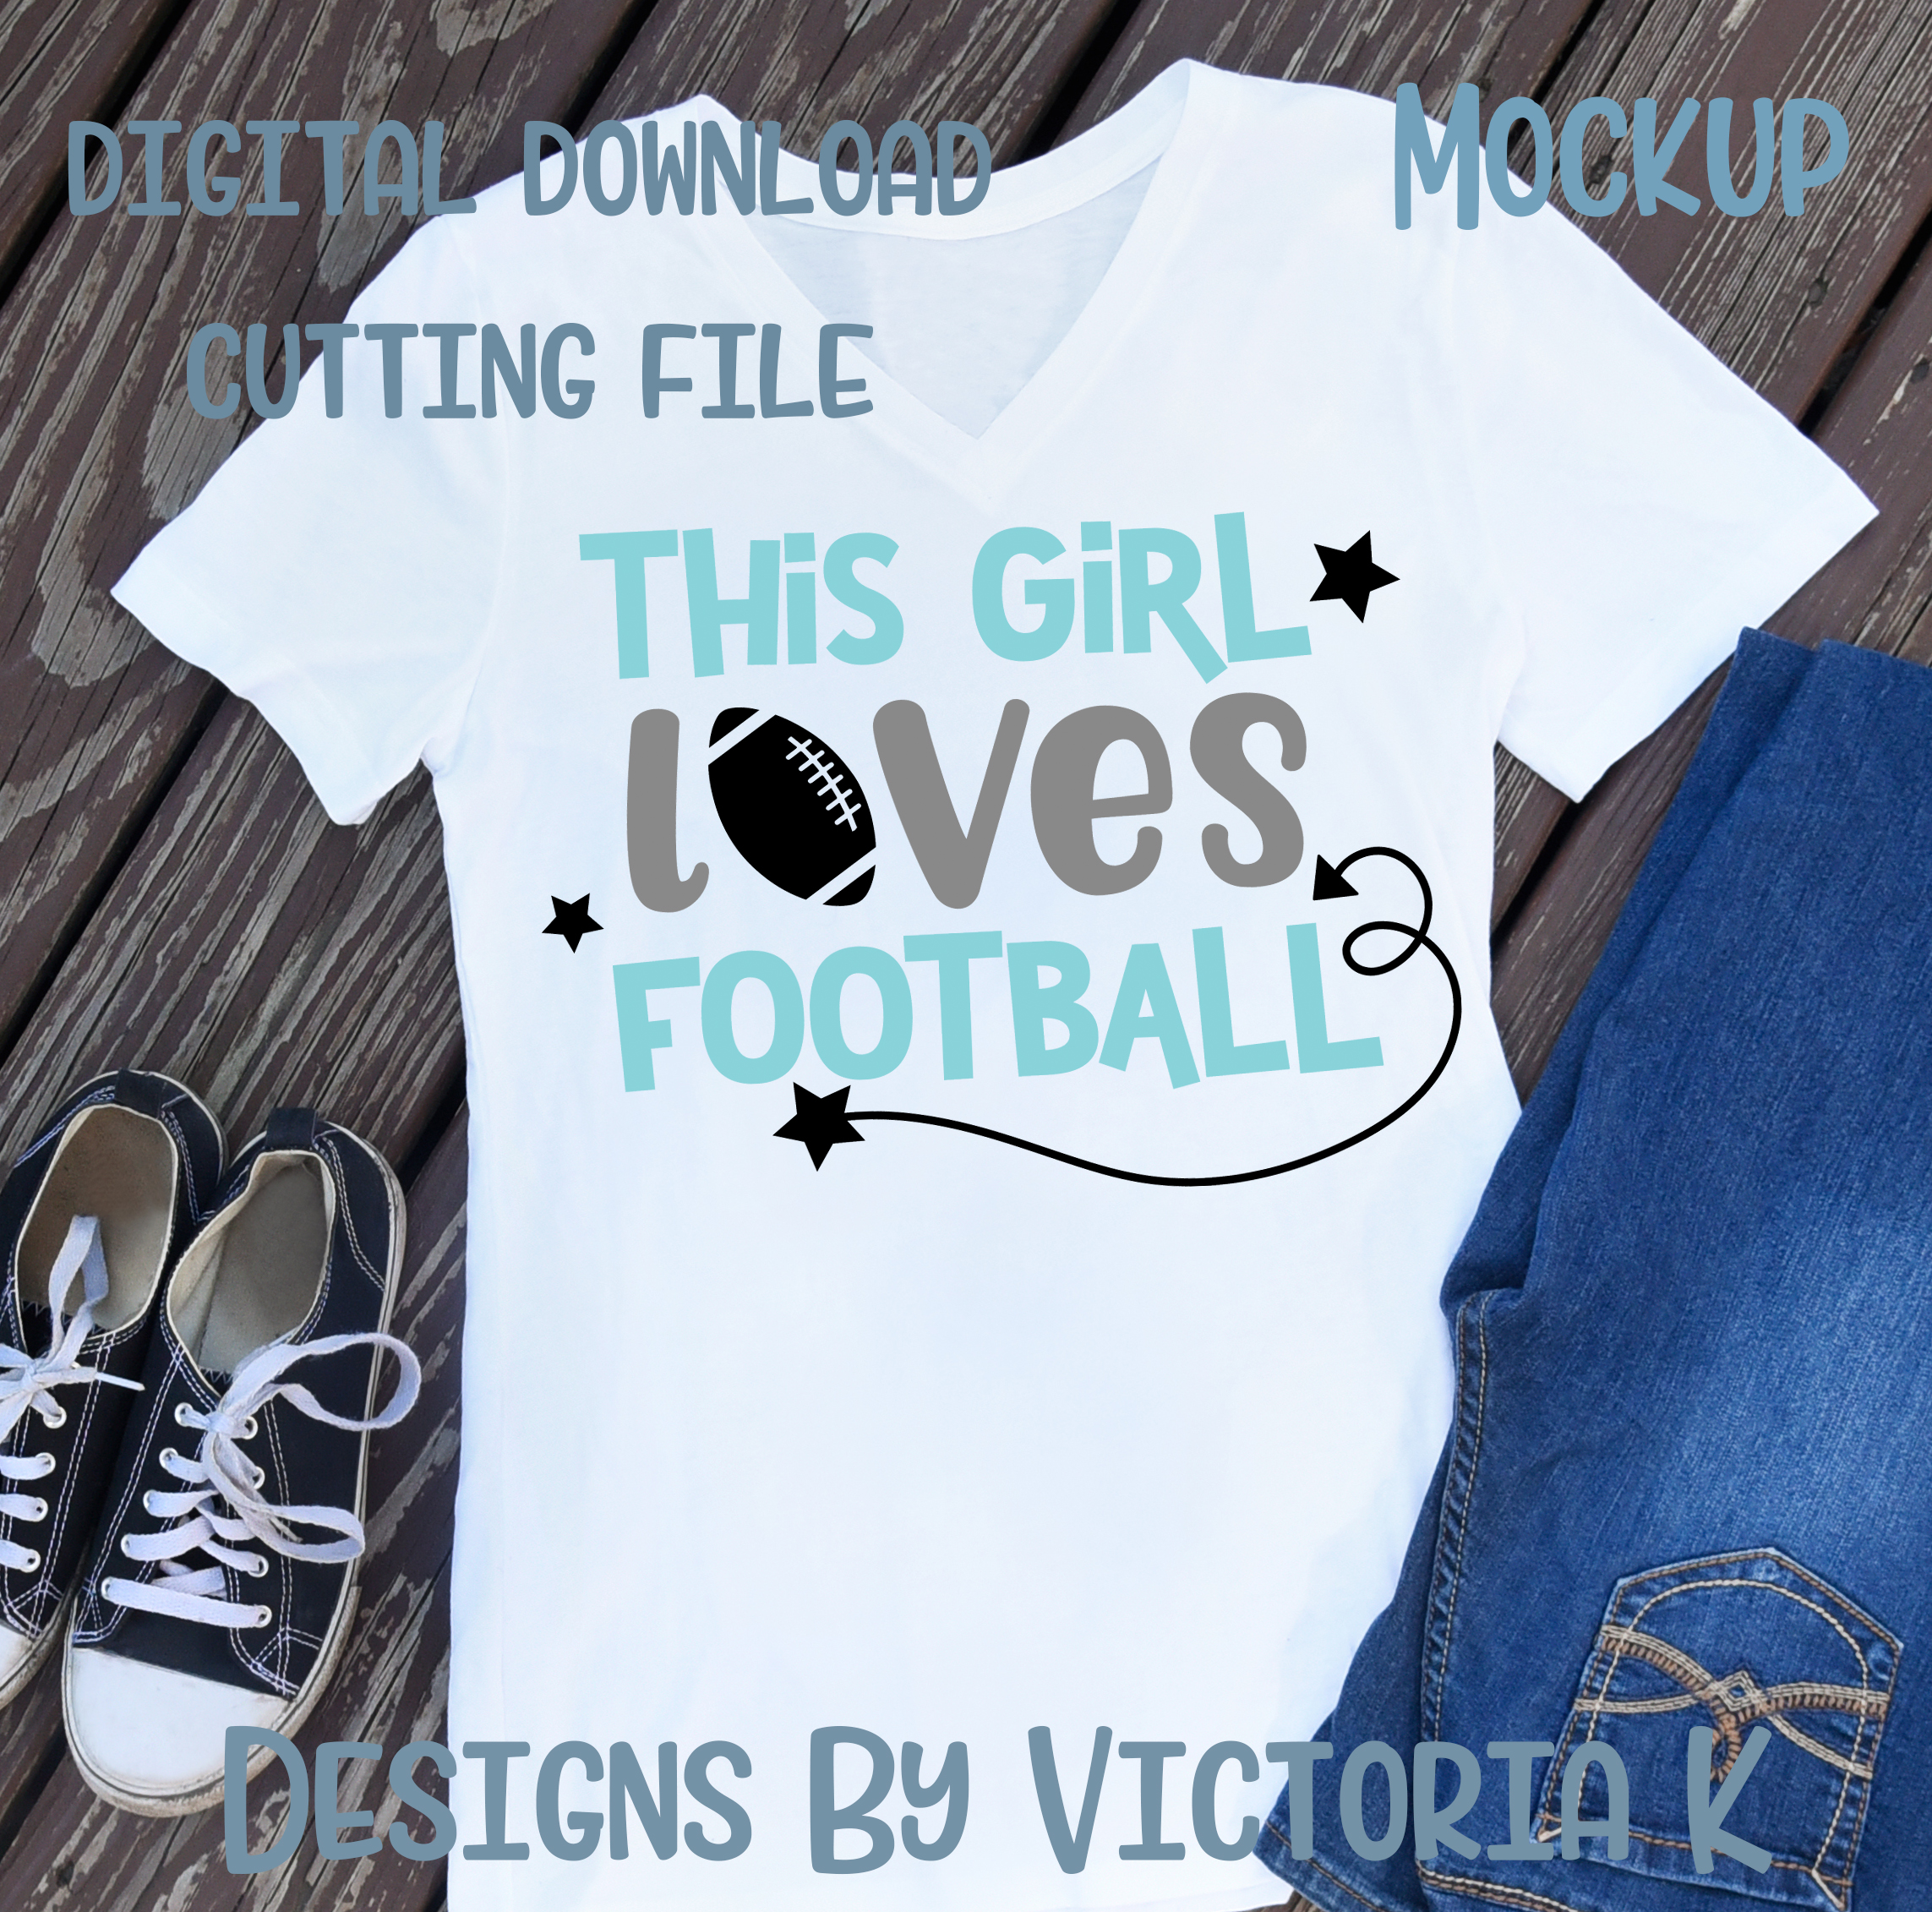 This Girl Loves Football, SVG, DXF, PNG example image 2